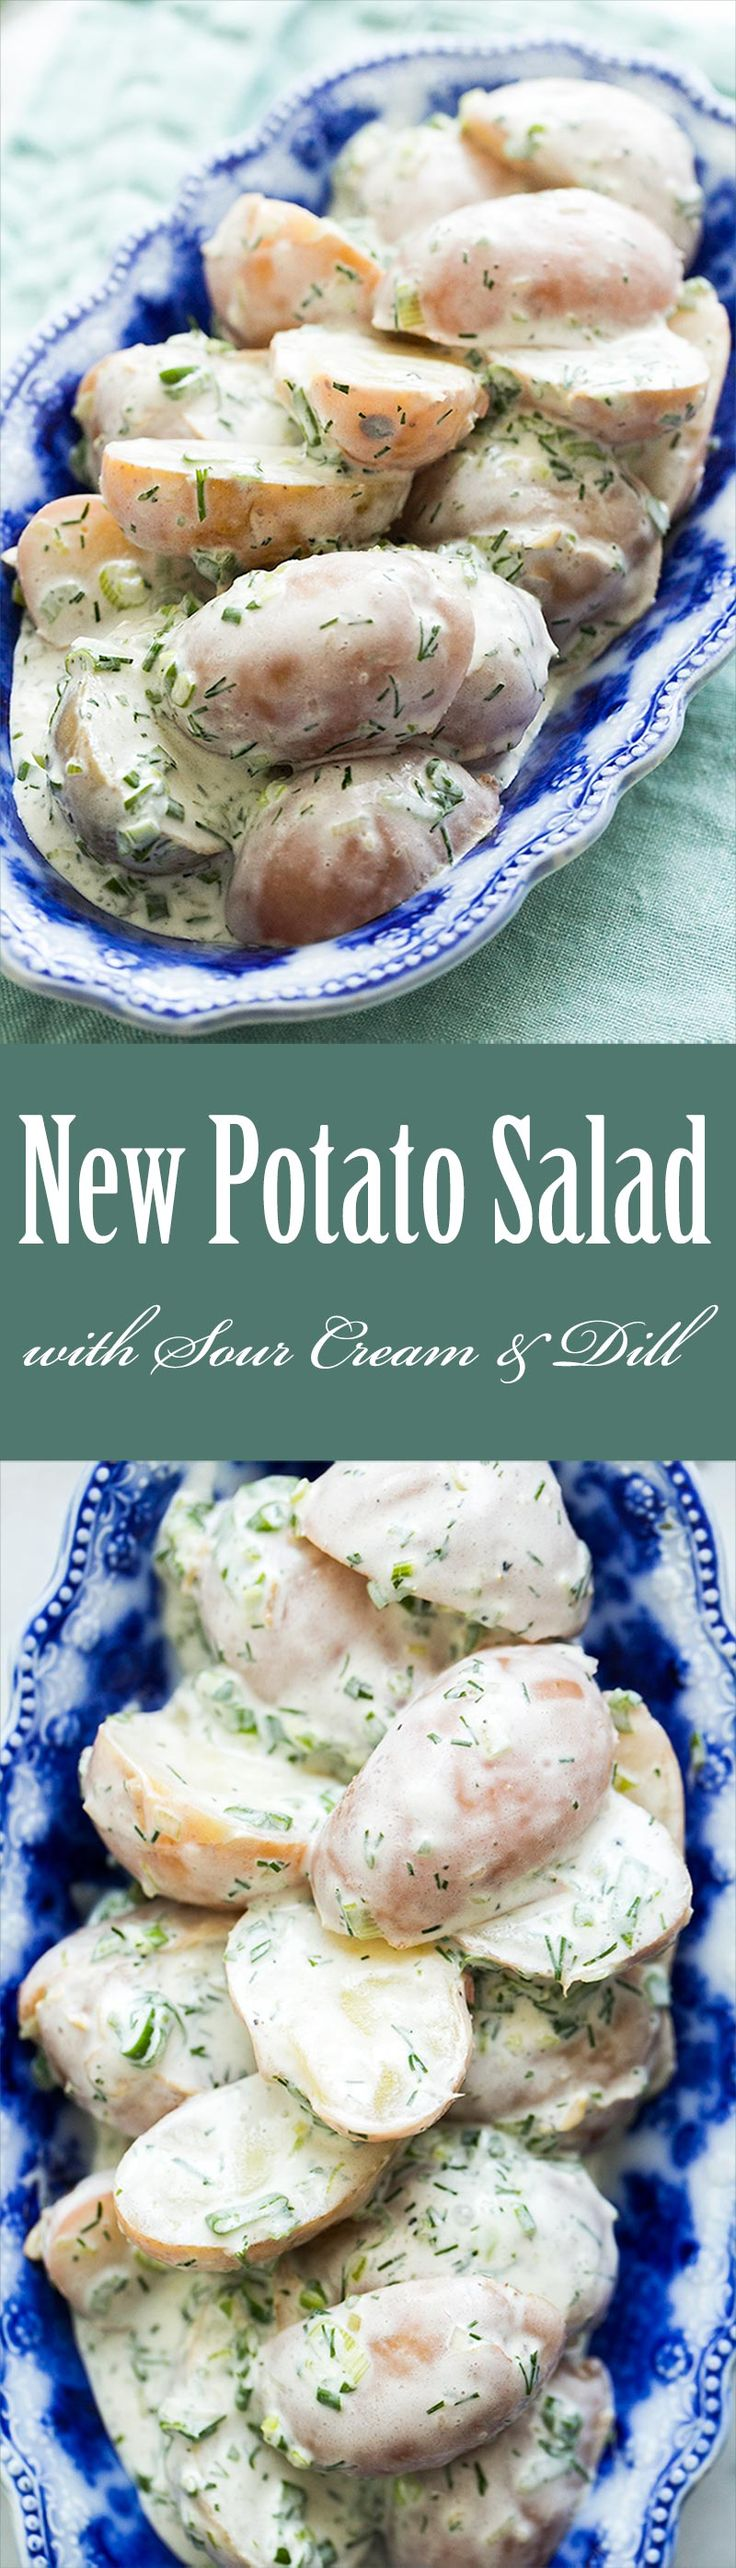 Easiest potato salad ever! With small red-skinned new potatoes, sour cream, and dill. Perfect for a potluck! On SimplyRecipes.com